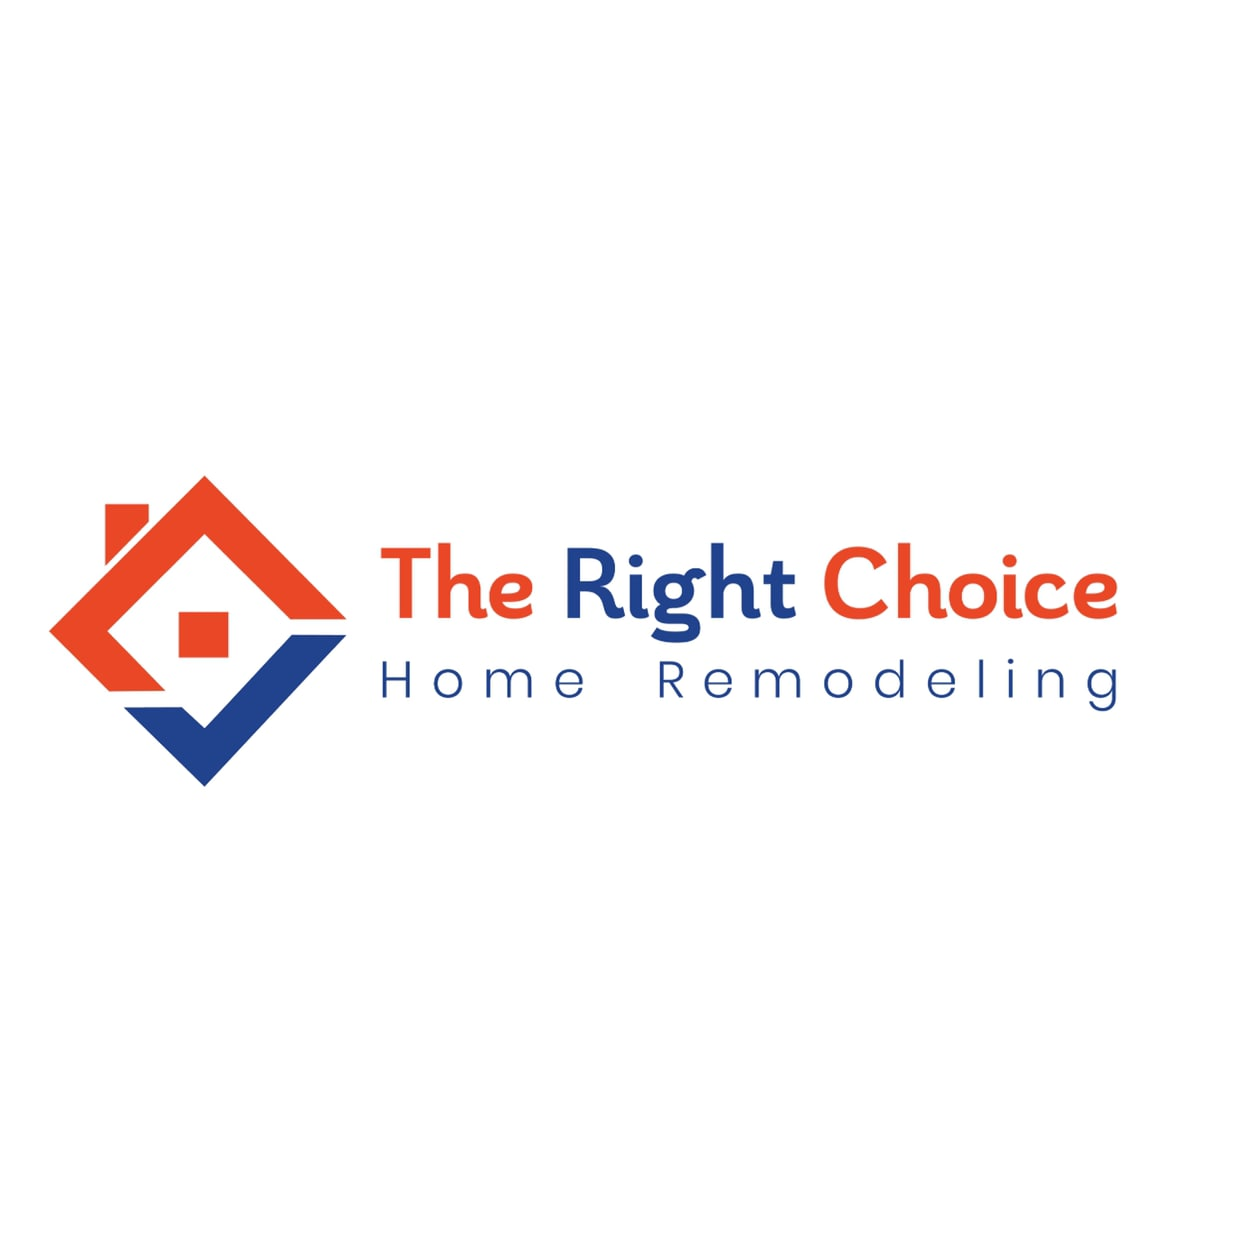 The Right Choice Home Remodeling inc